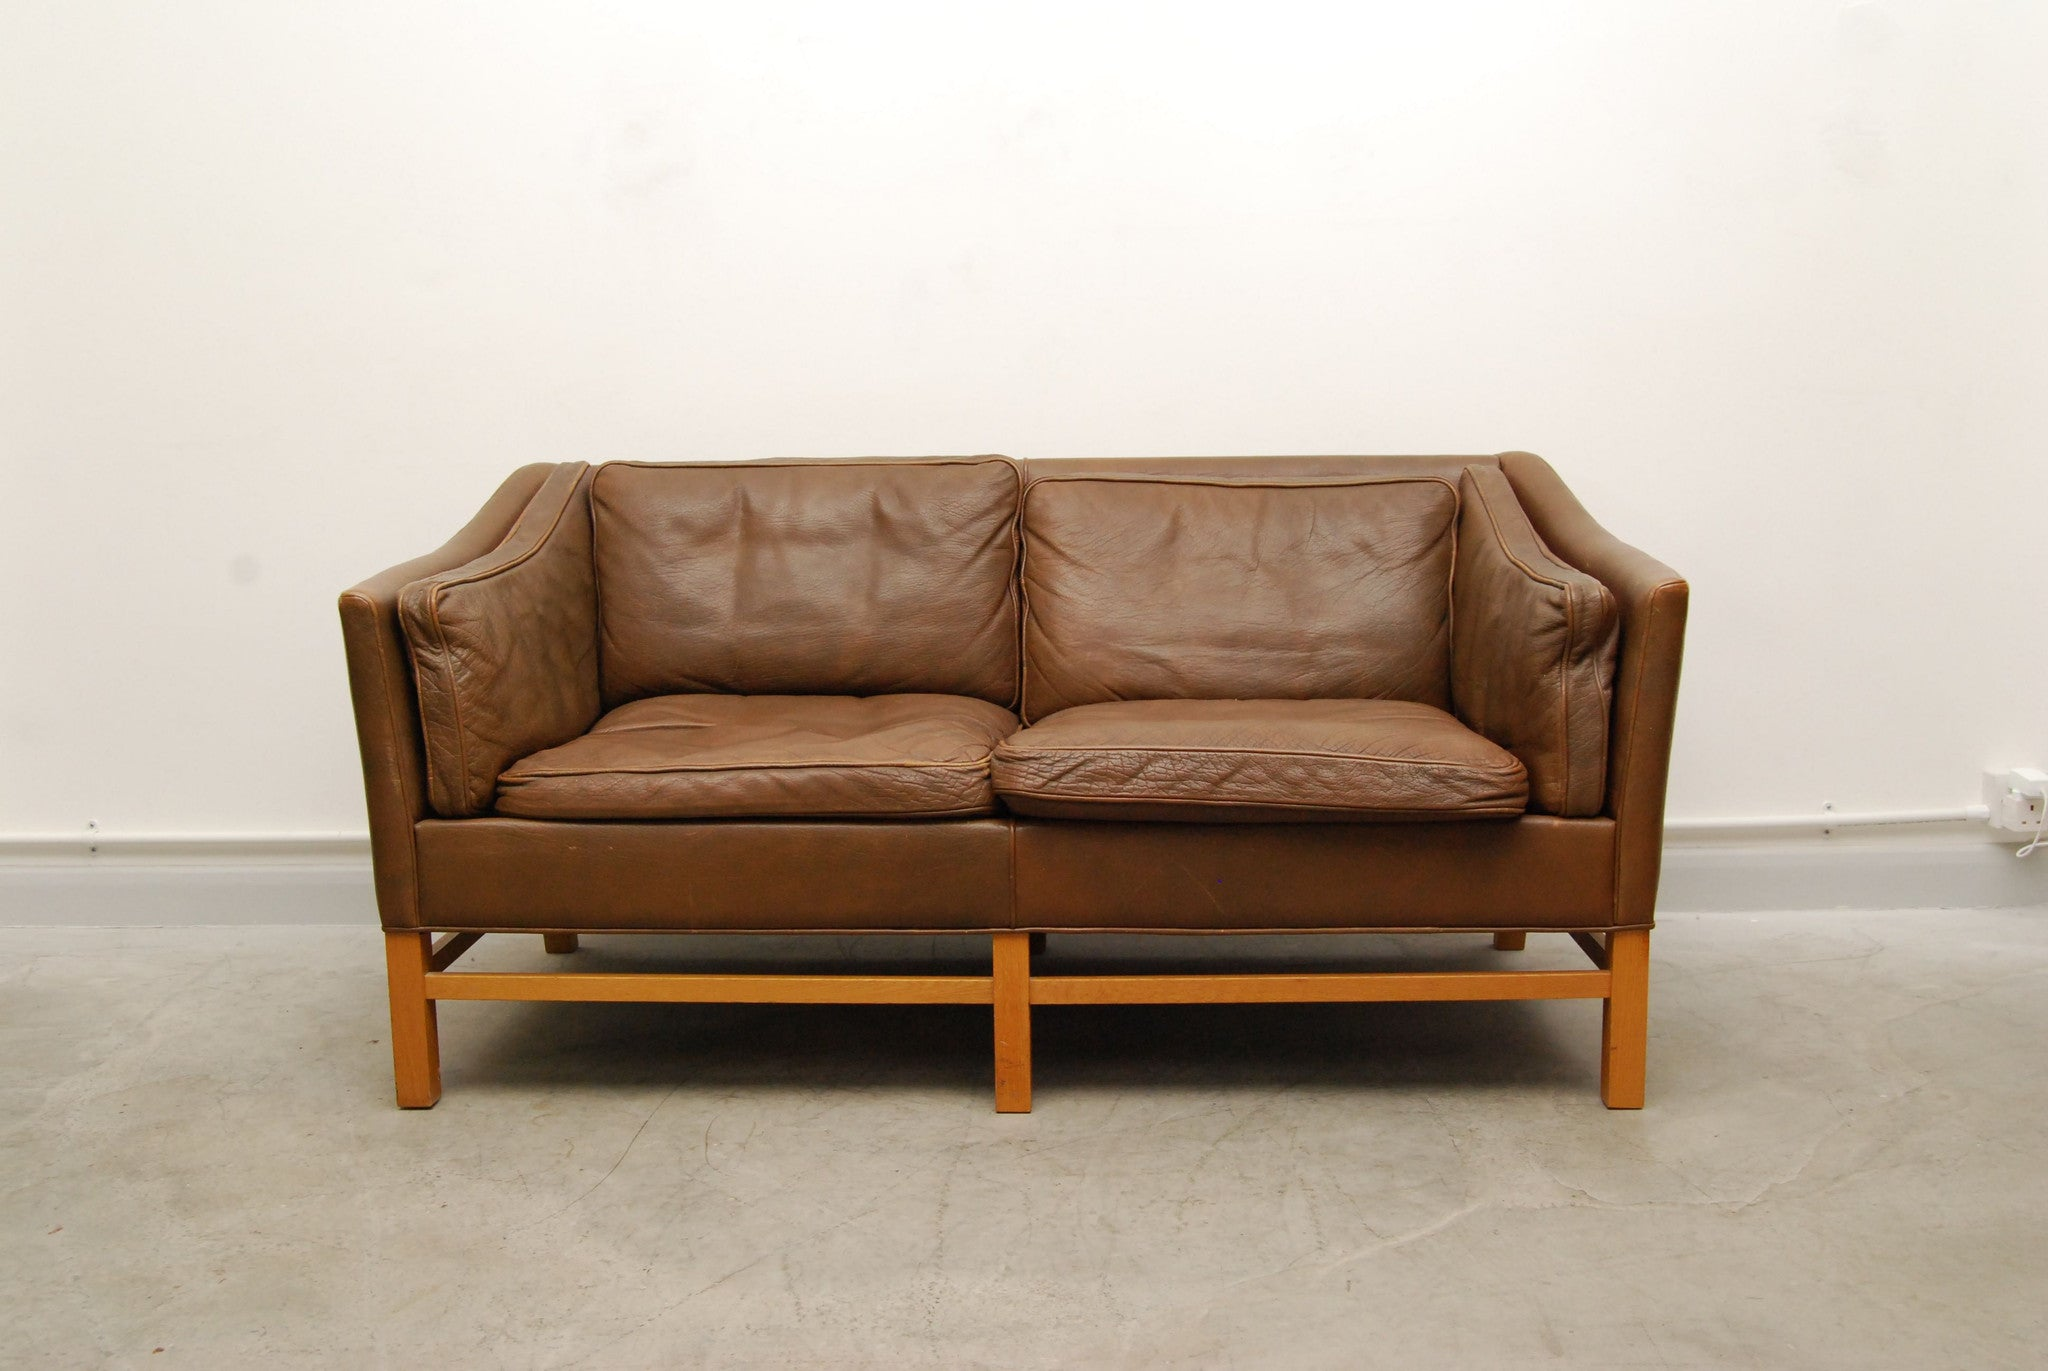 Scalloped back two seat sofa